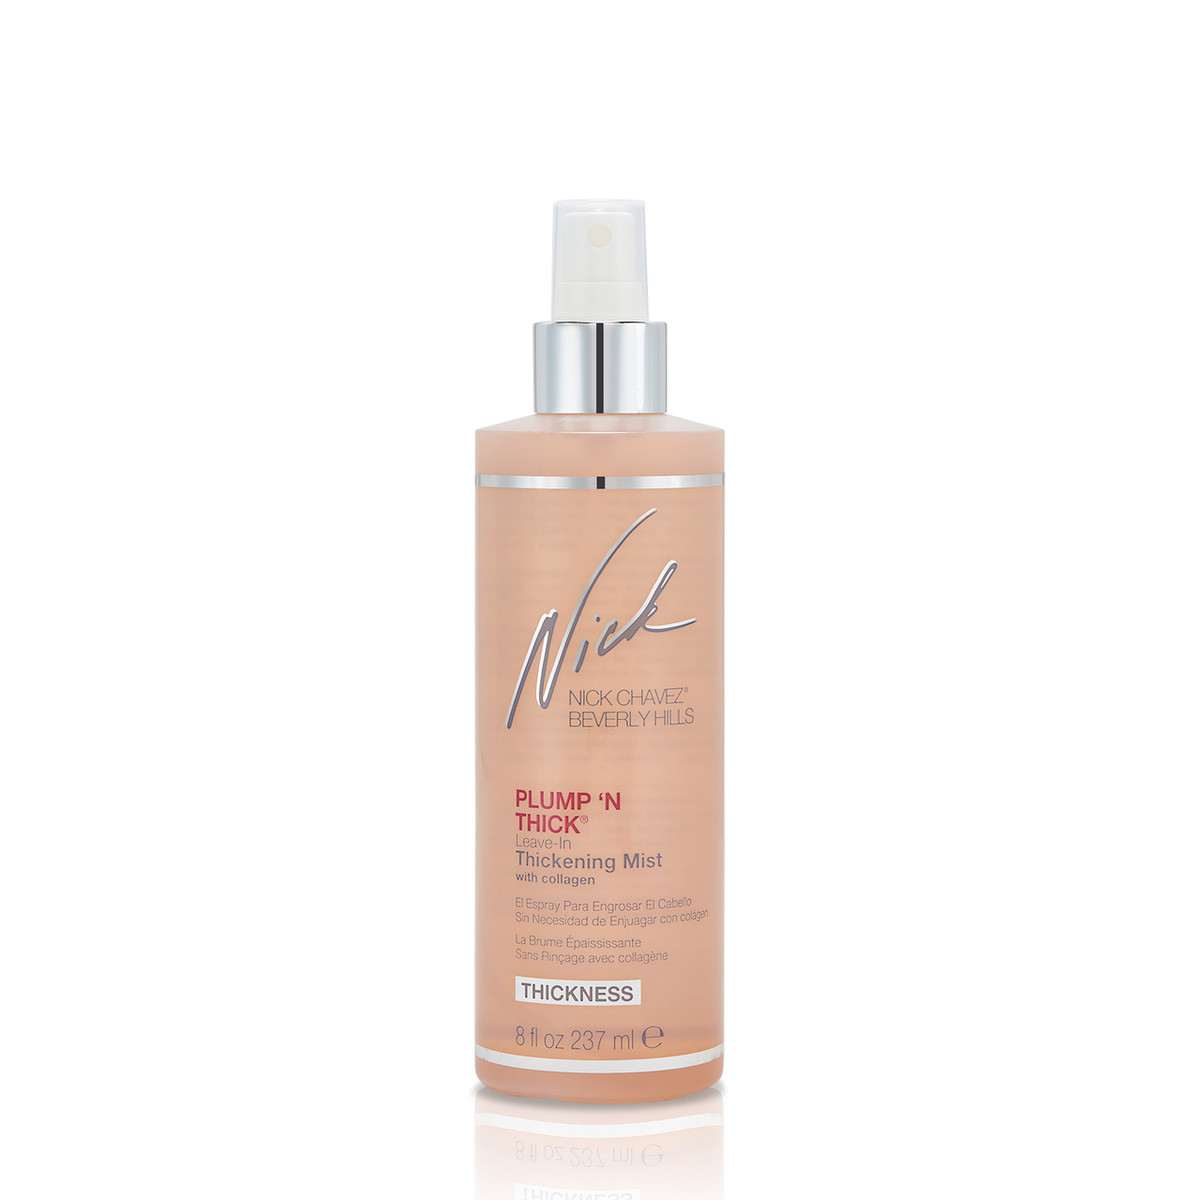 Plump 'N Thick Leave-In Thickening Mist 8oz.